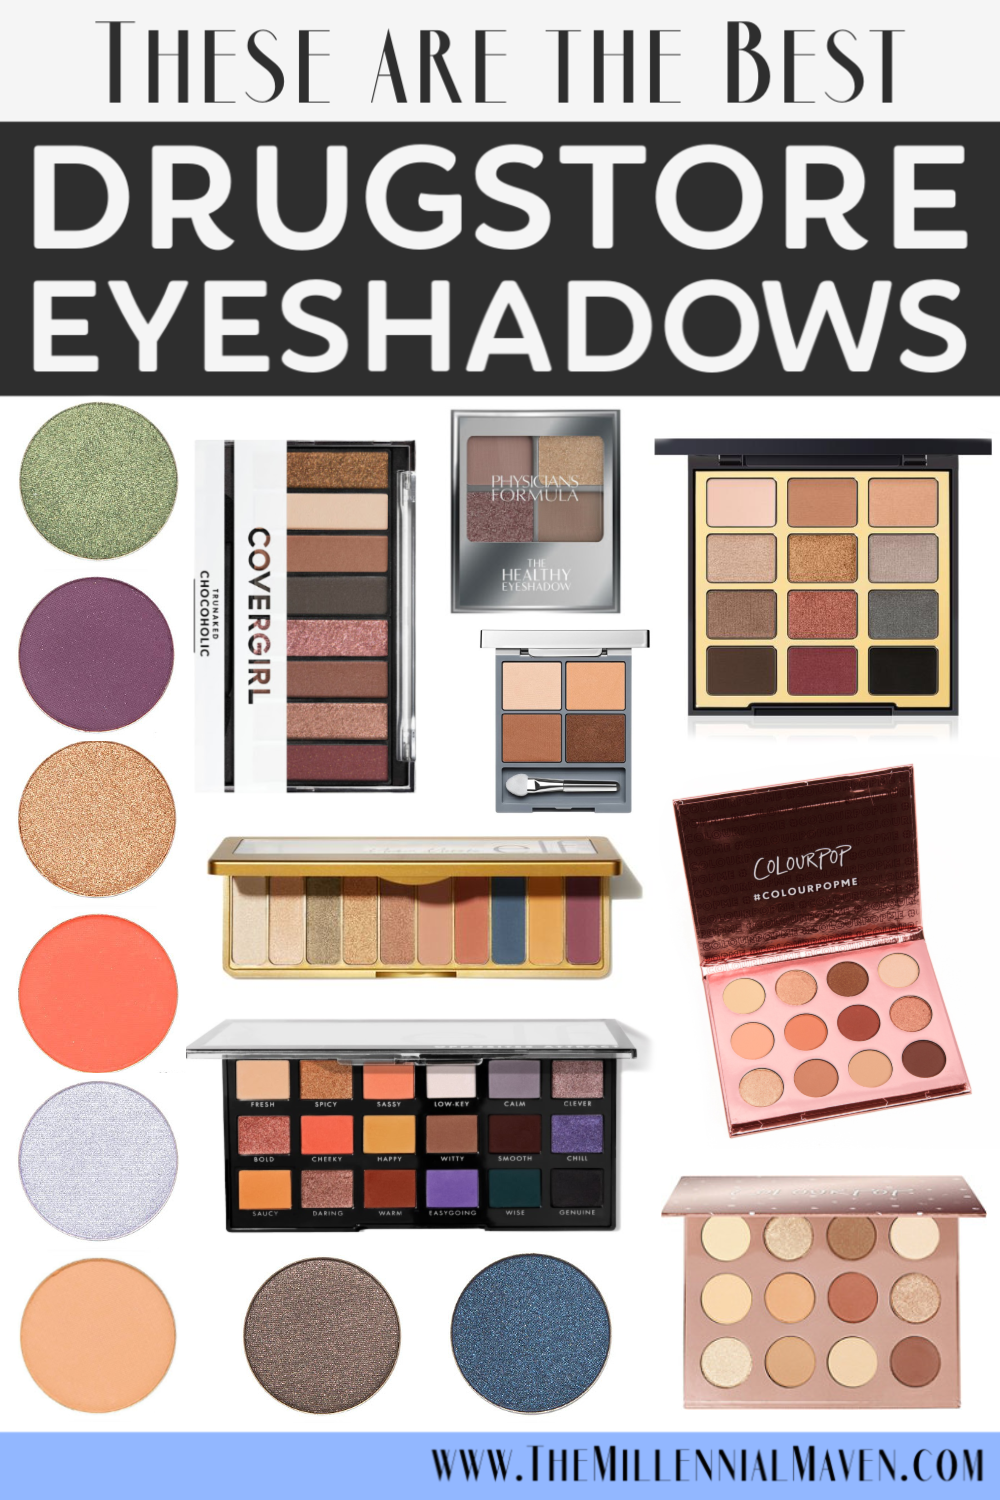 24 Best Cheap But Good Eyeshadow Palettes You Need In Your Life Best Eyeshadow Palette Drugstore Eyeshadow Cheap Eyeshadow Palette